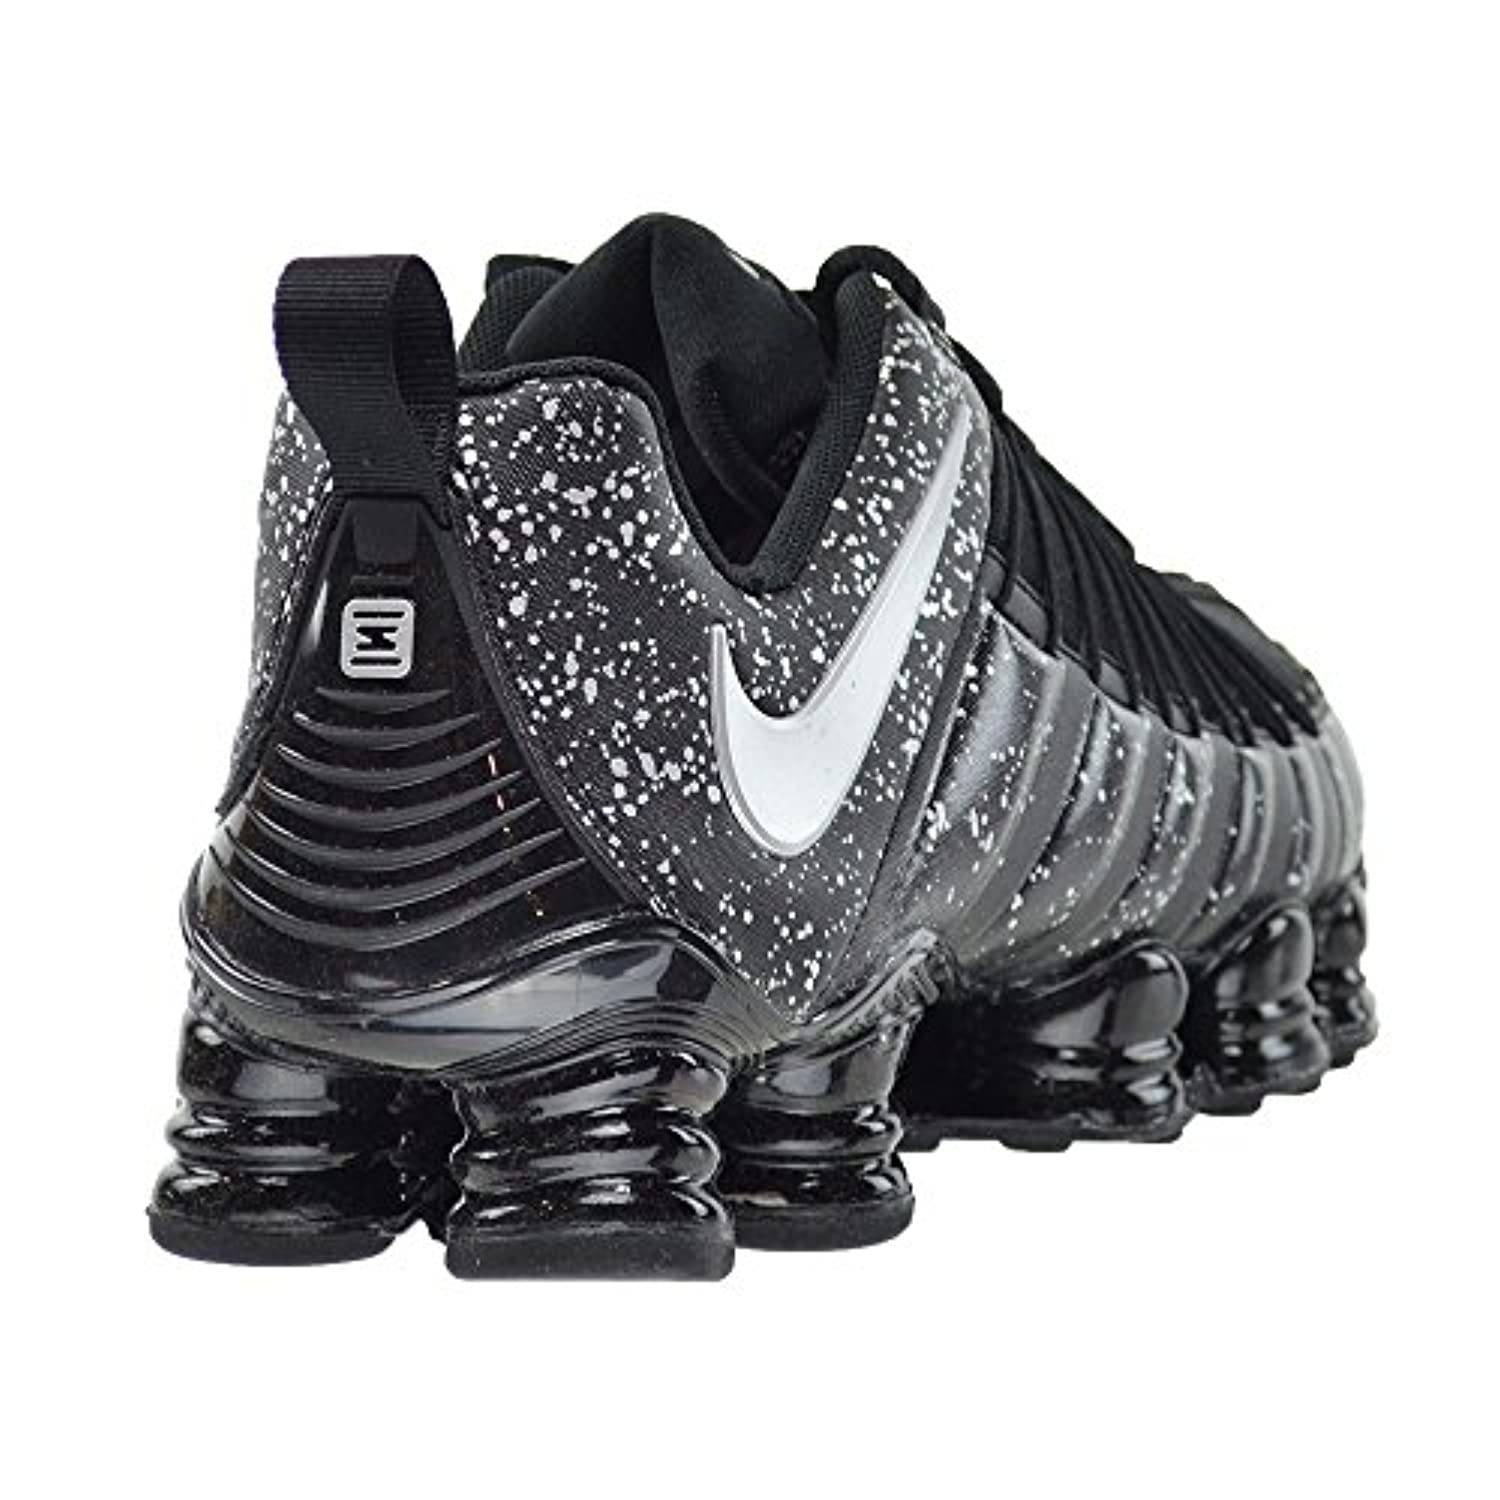 8cb3ade9bfbcc9 ... where to buy nike total shox mens running shoes black metallic silver  749775 003 12 d